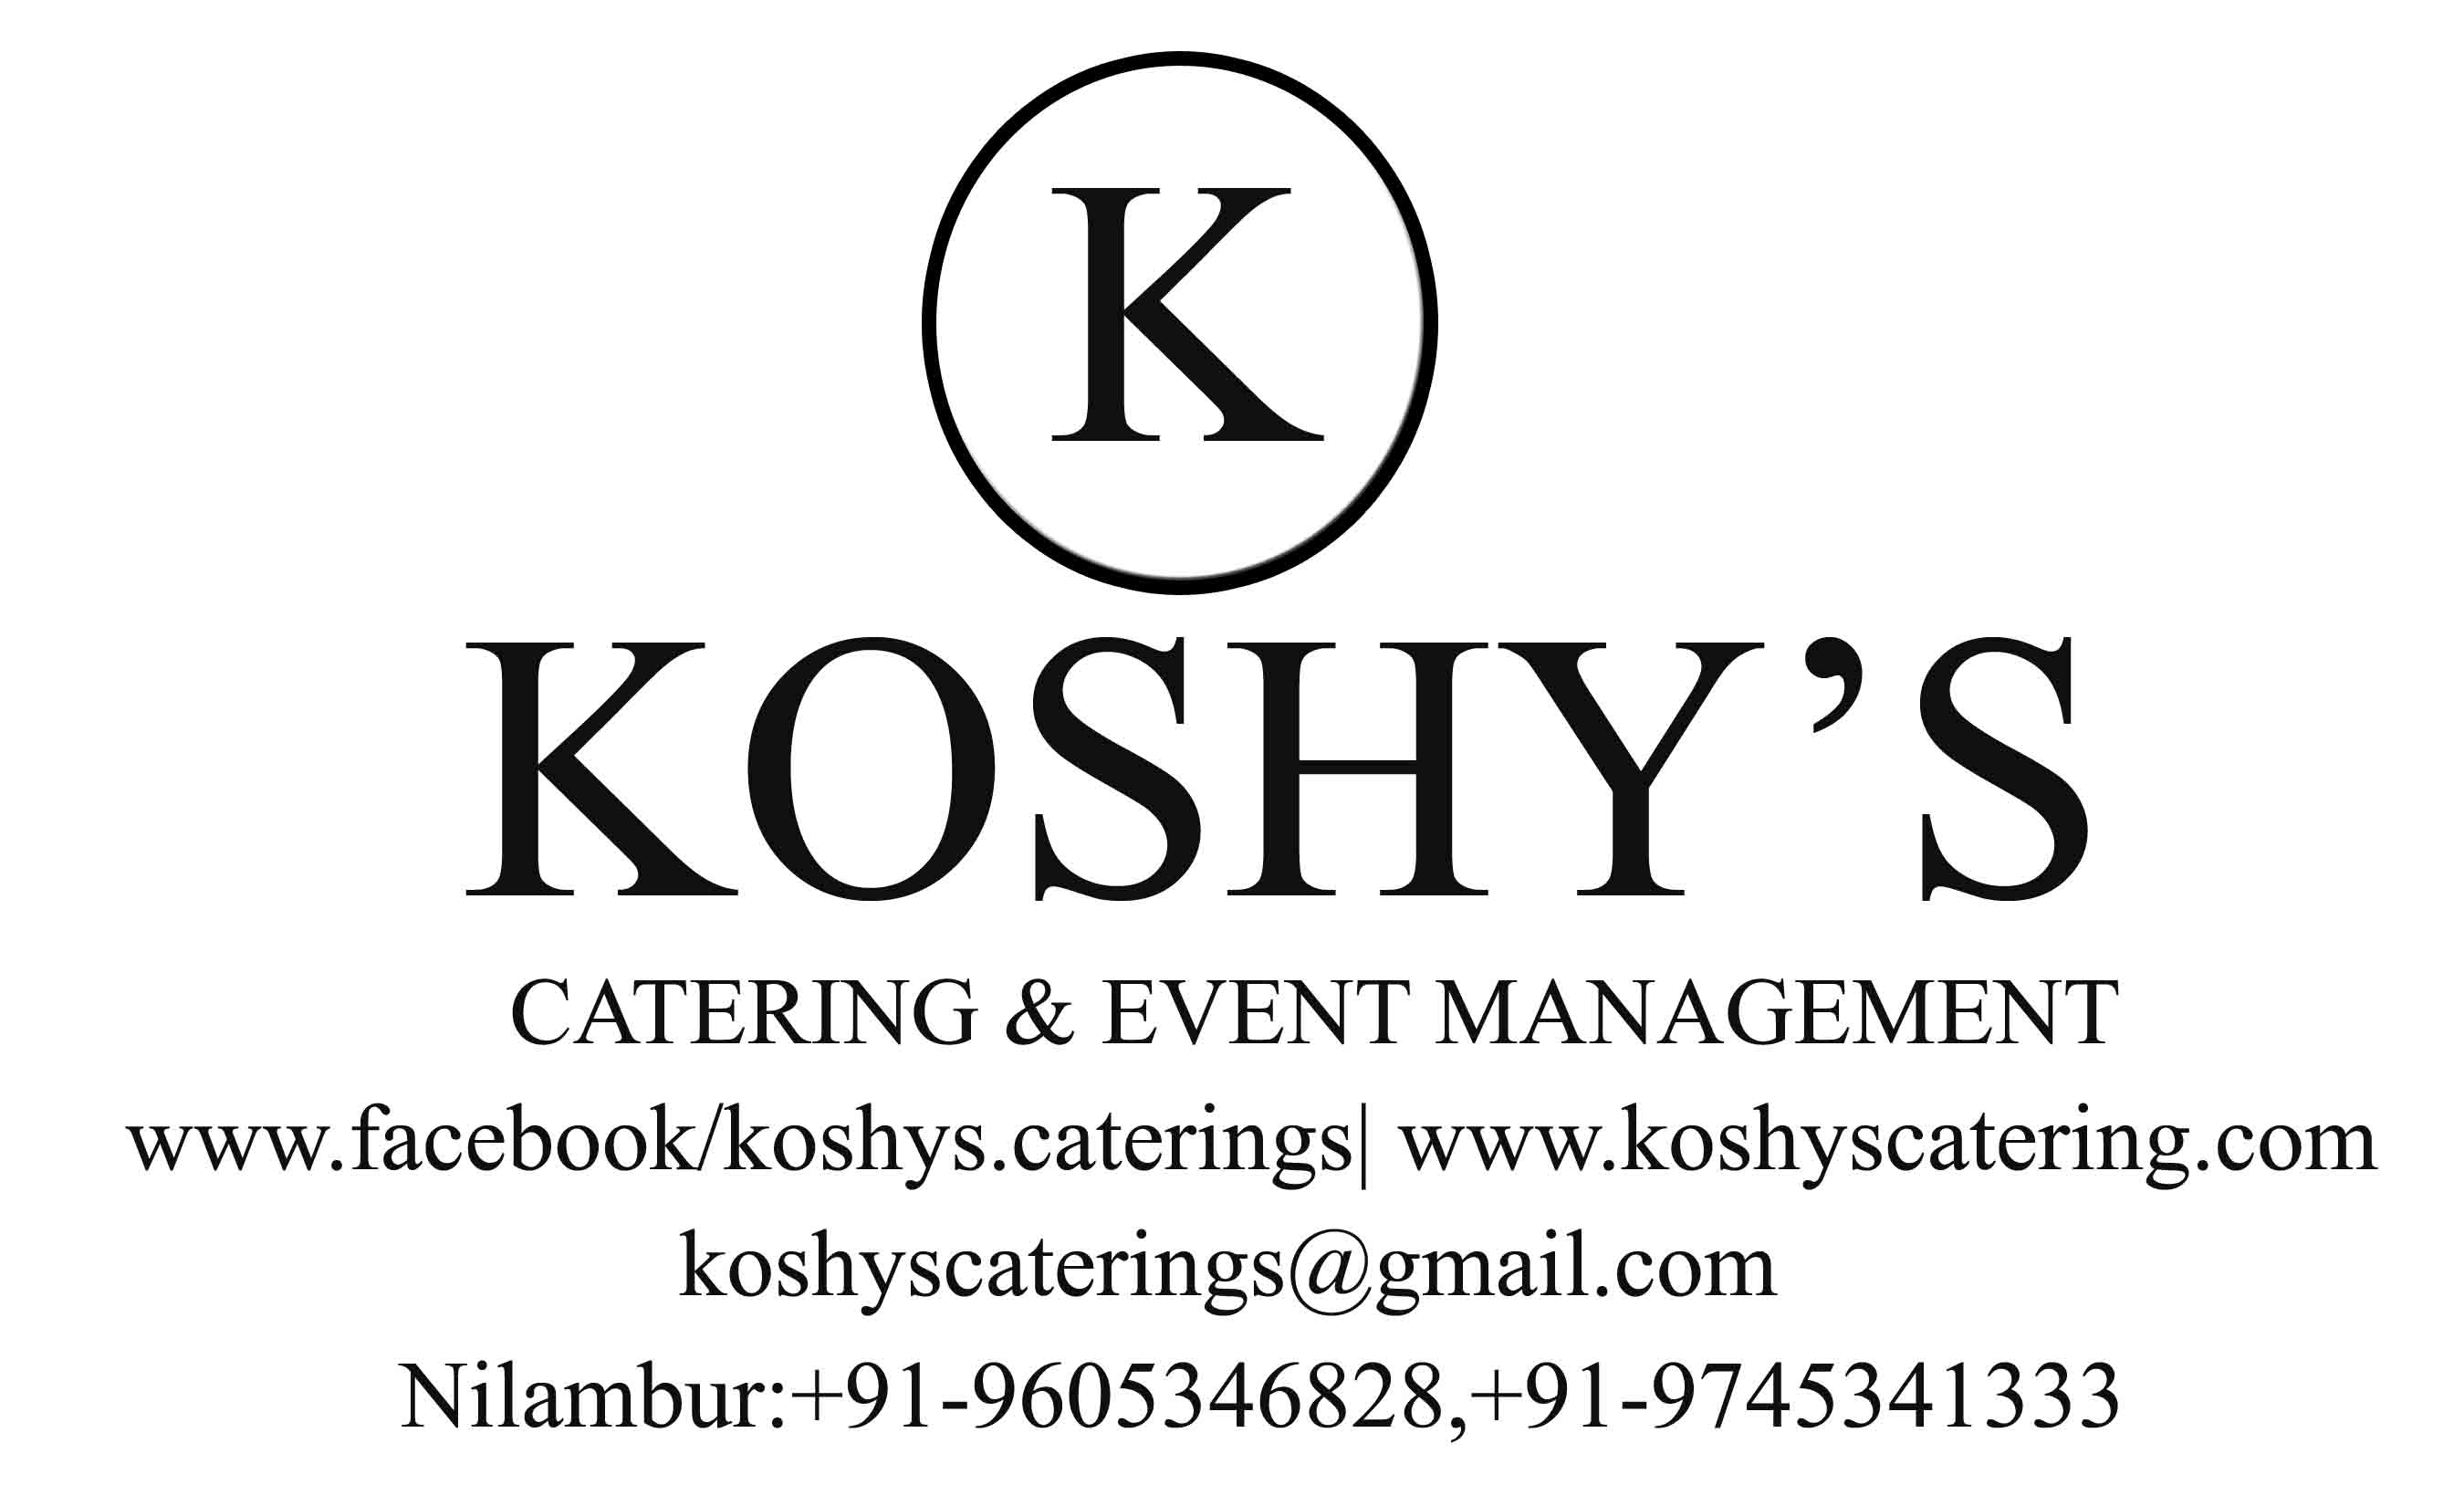 KOSHY'S CATERING & EVENT MANAGEMENT